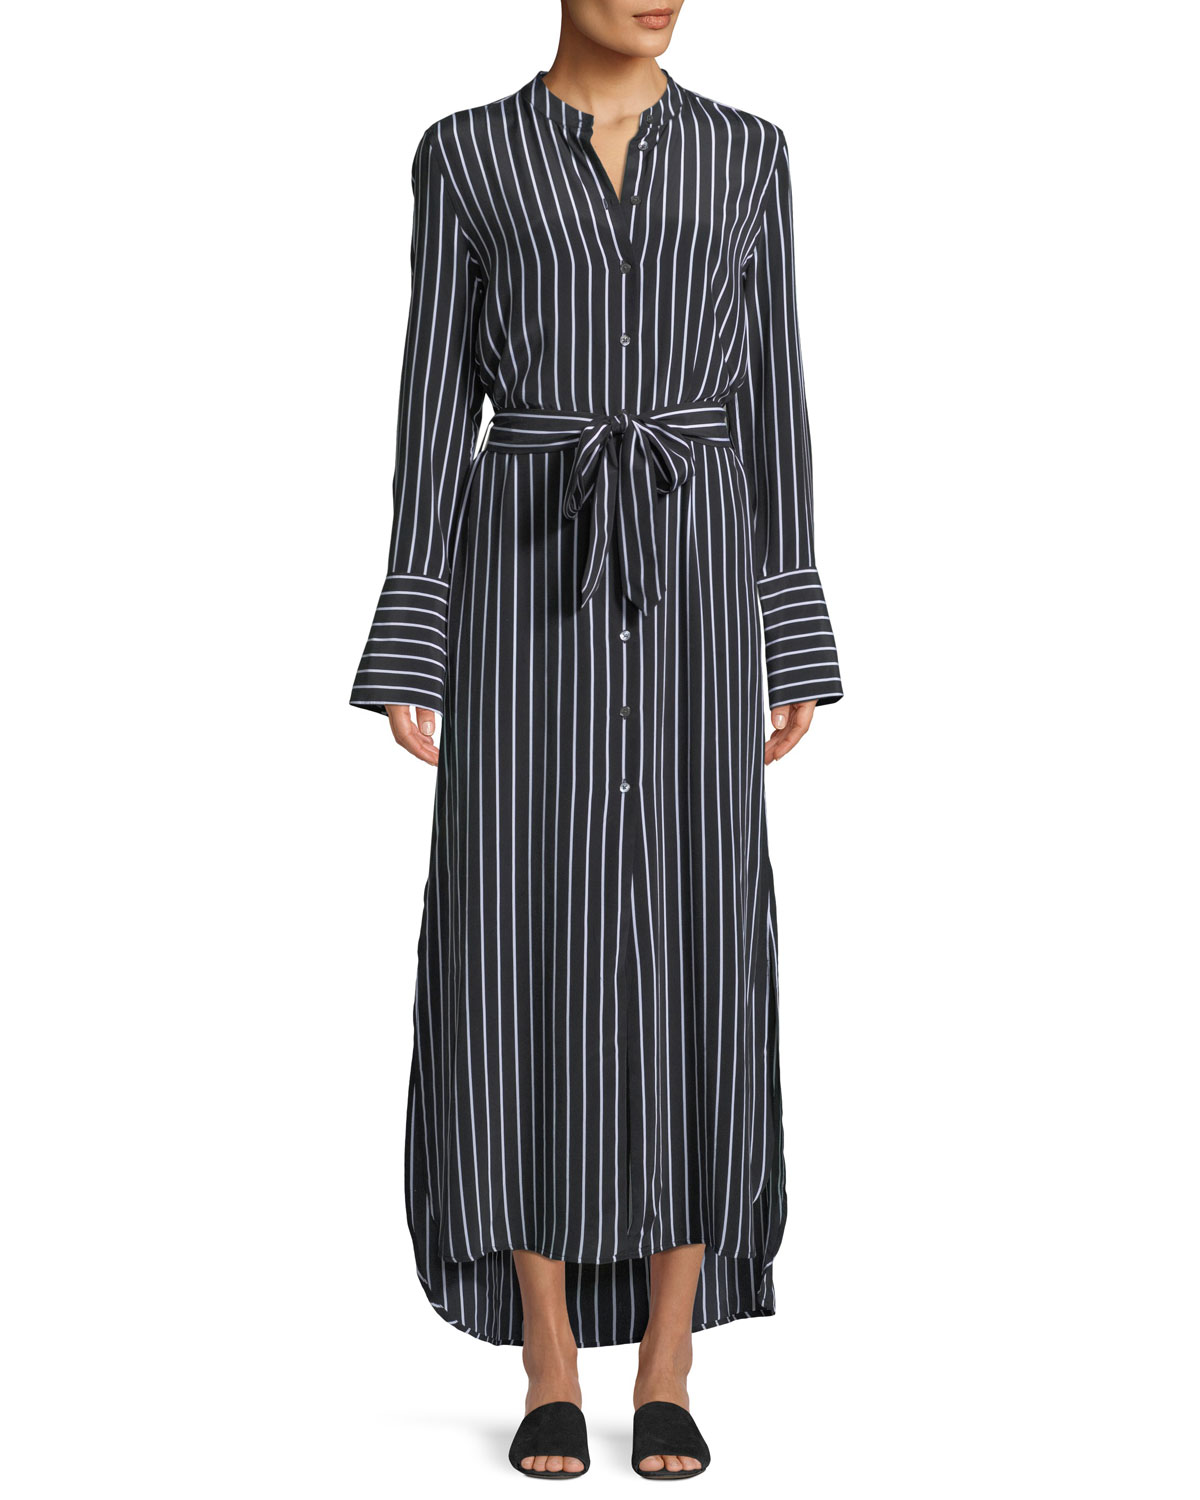 Connell Excellence Striped Silk Button-Front Maxi Dress, True Blackbright